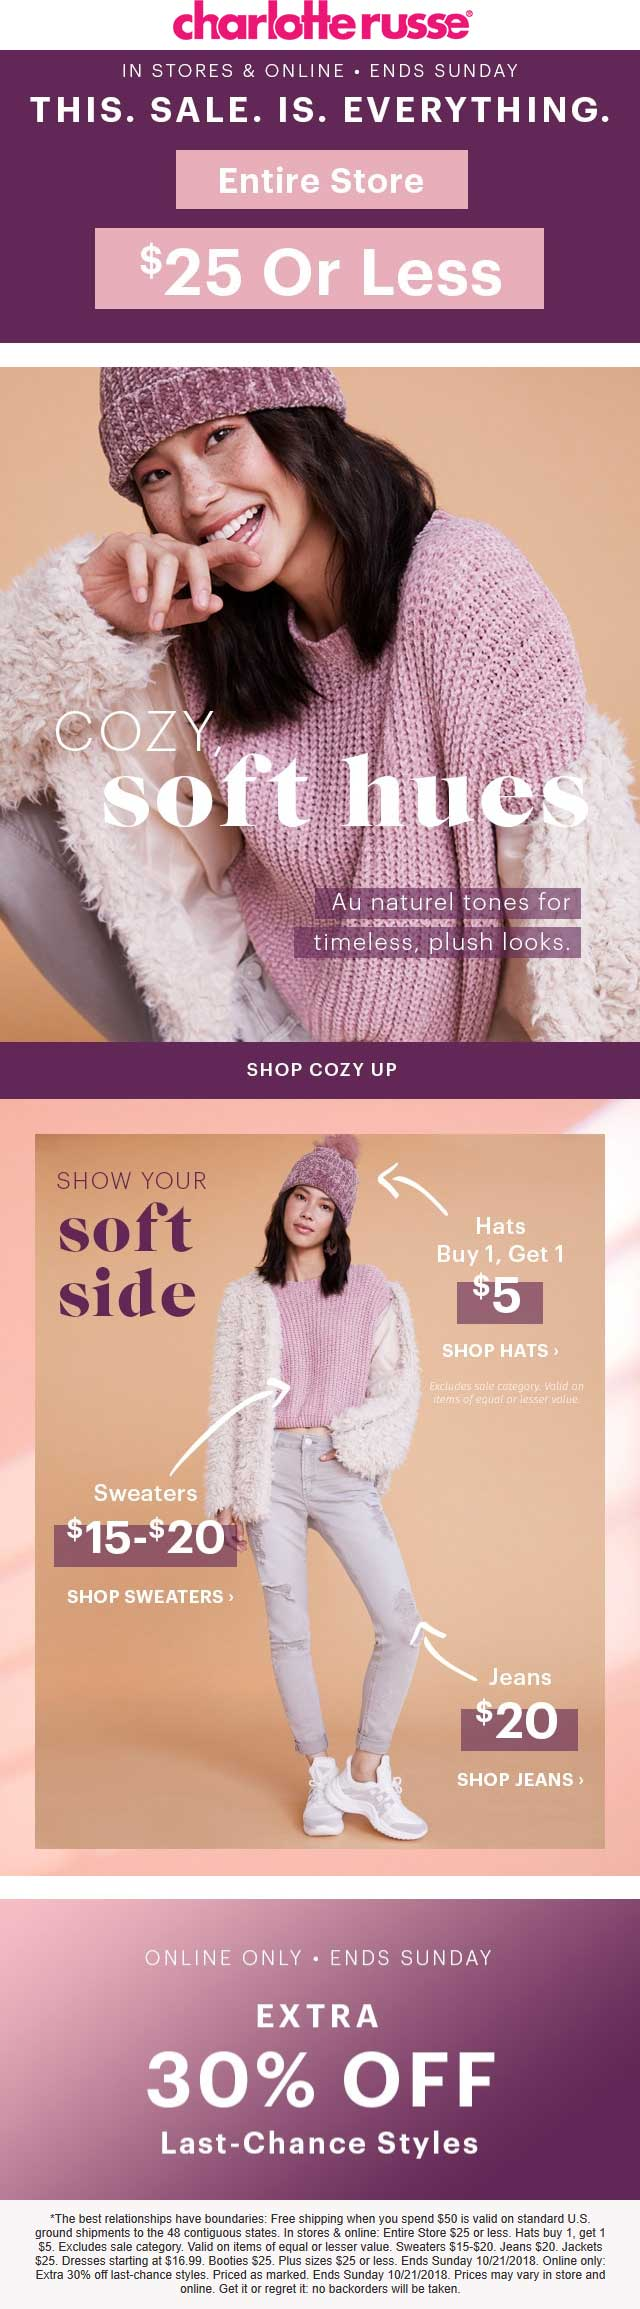 CharlotteRusse.com Promo Coupon Entire store under $26 at Charlotte Russe, ditto online